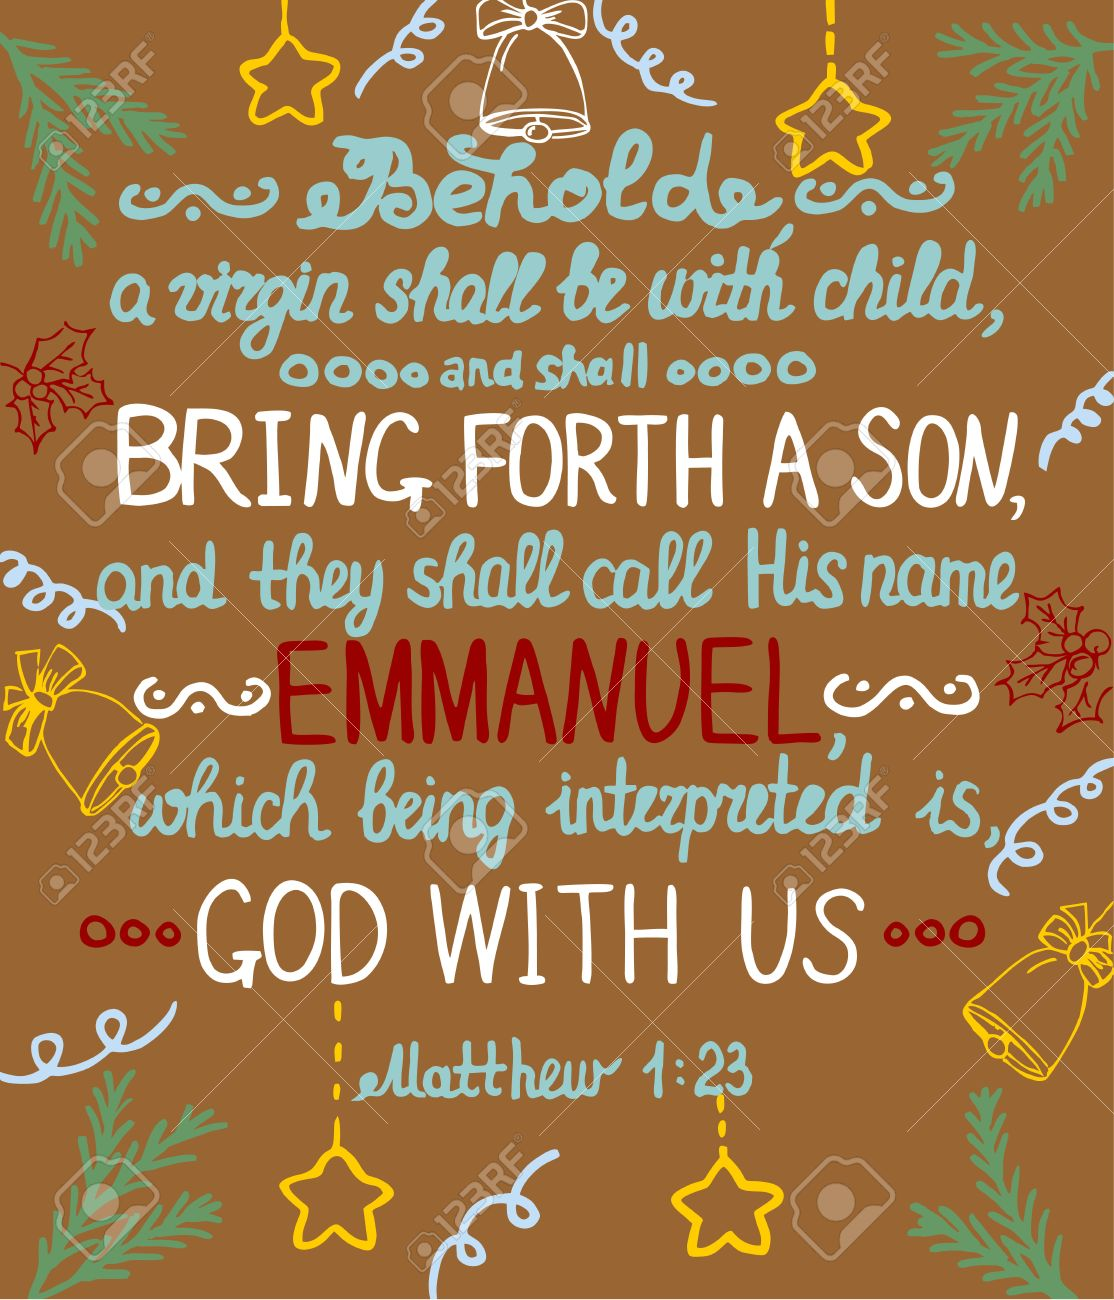 Christmas background with lettering Bible She shall bring forth a Son and shall call his name Emmanuel, which means God with us. - 61529512